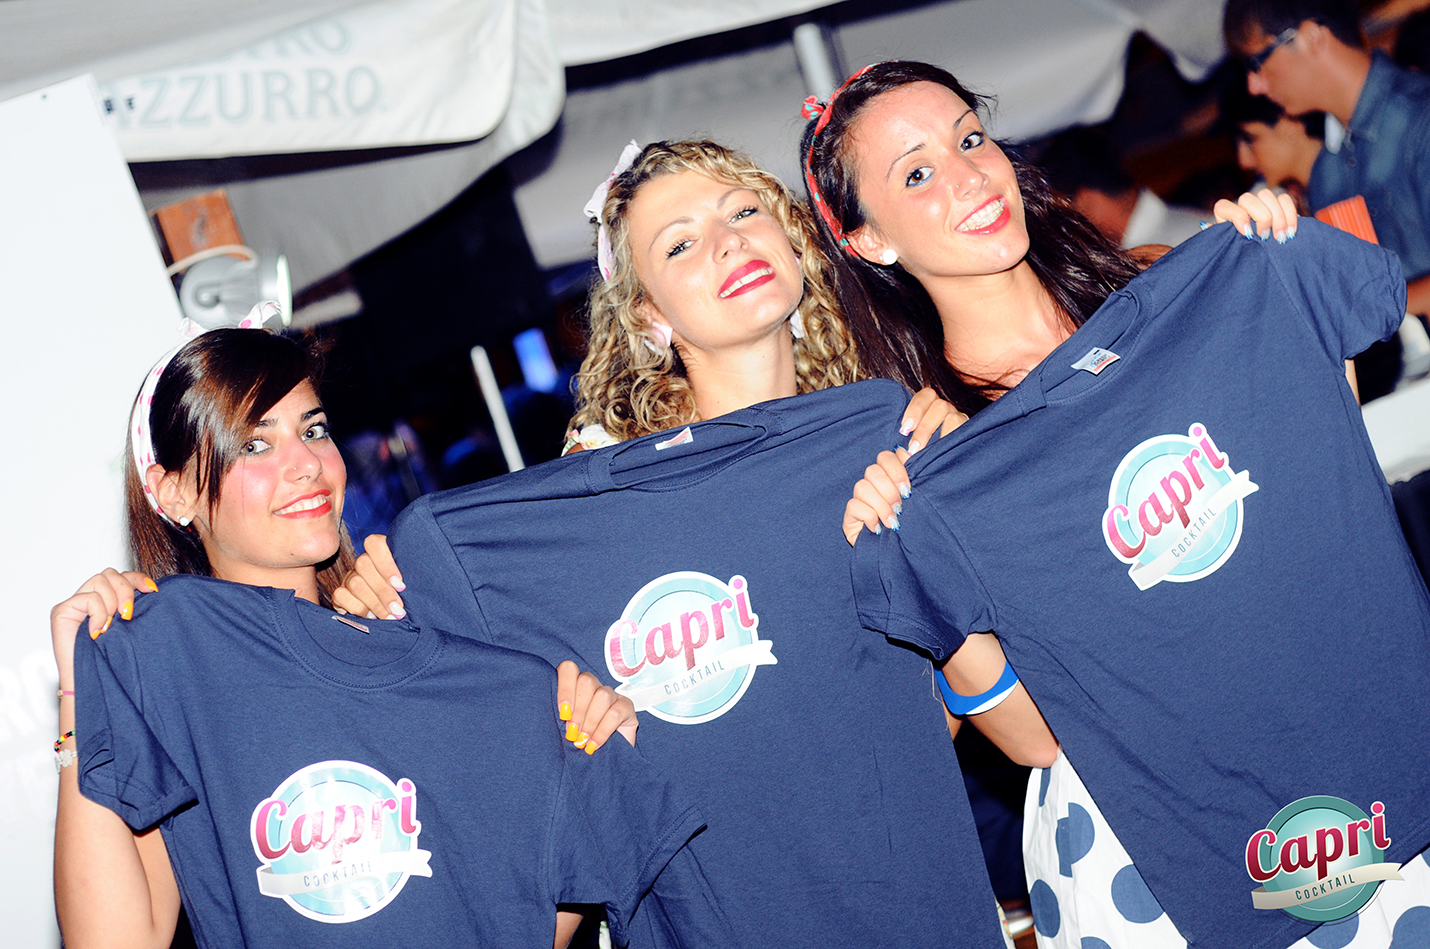 Capri_party_fabio_camboni_bar_eolo